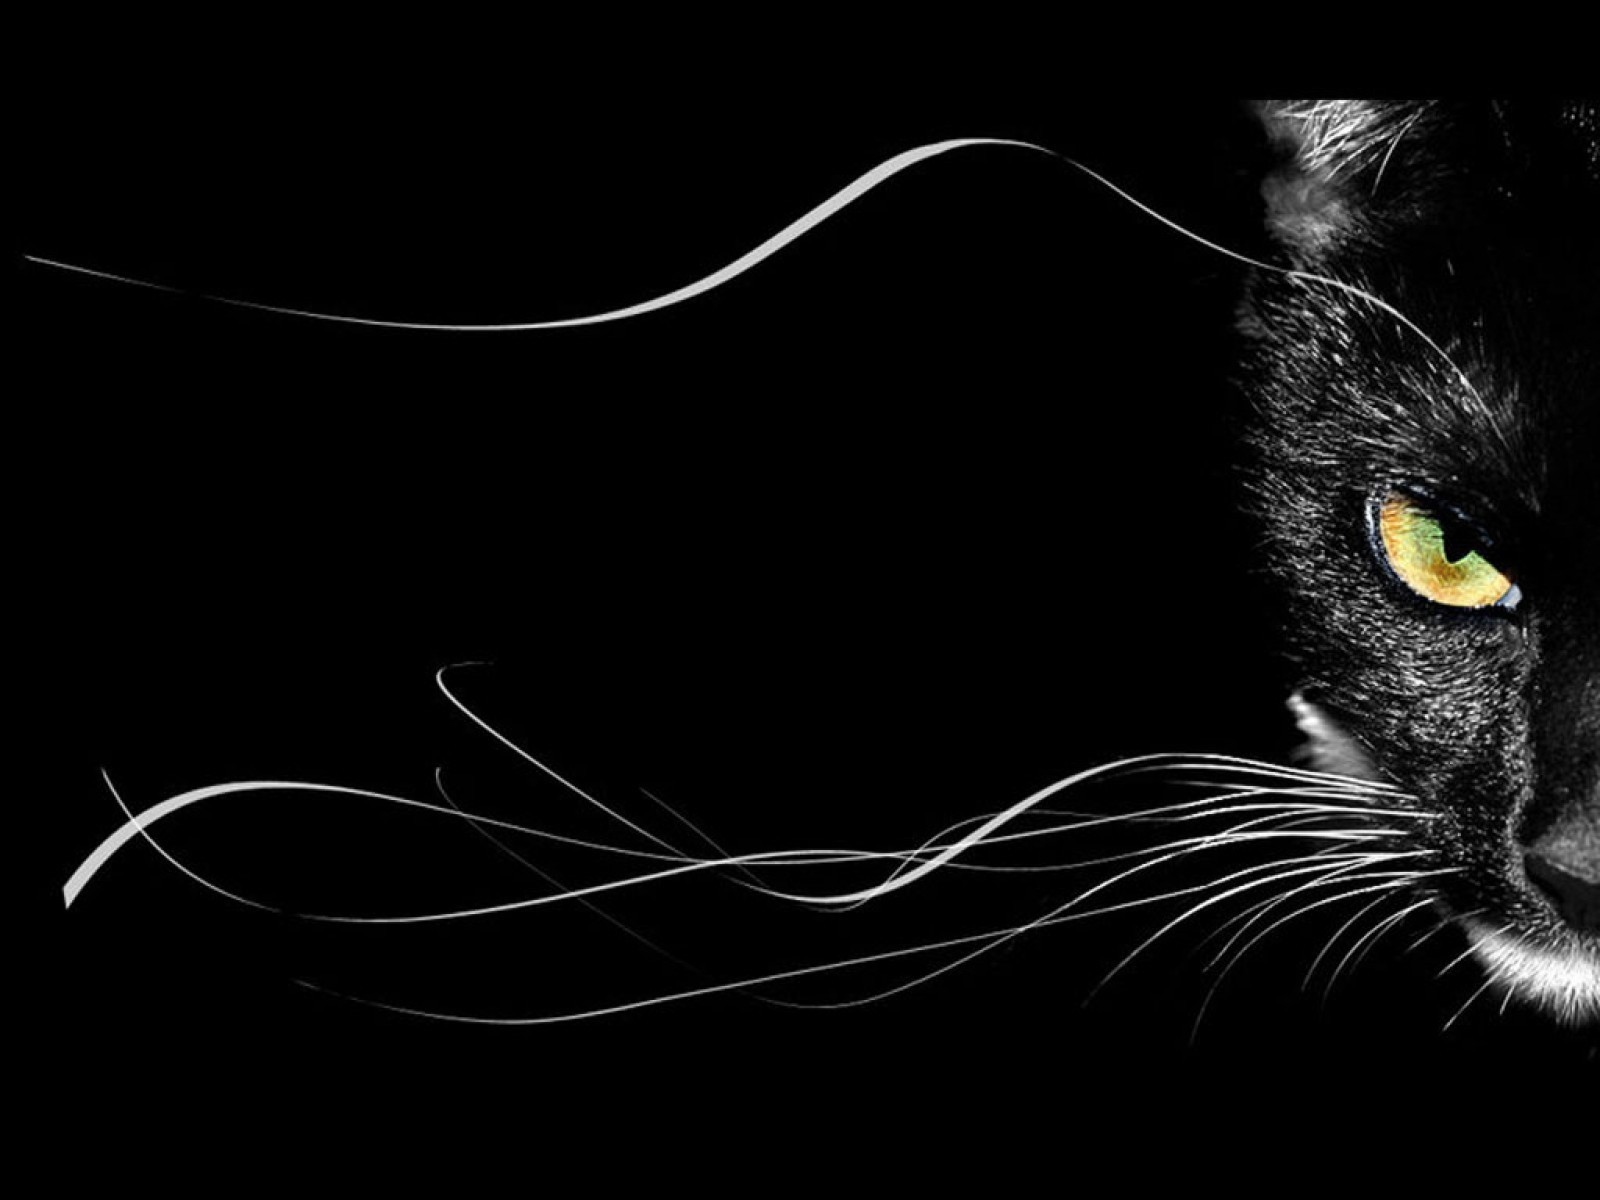 15340 download wallpaper Animals, Cats screensavers and pictures for free